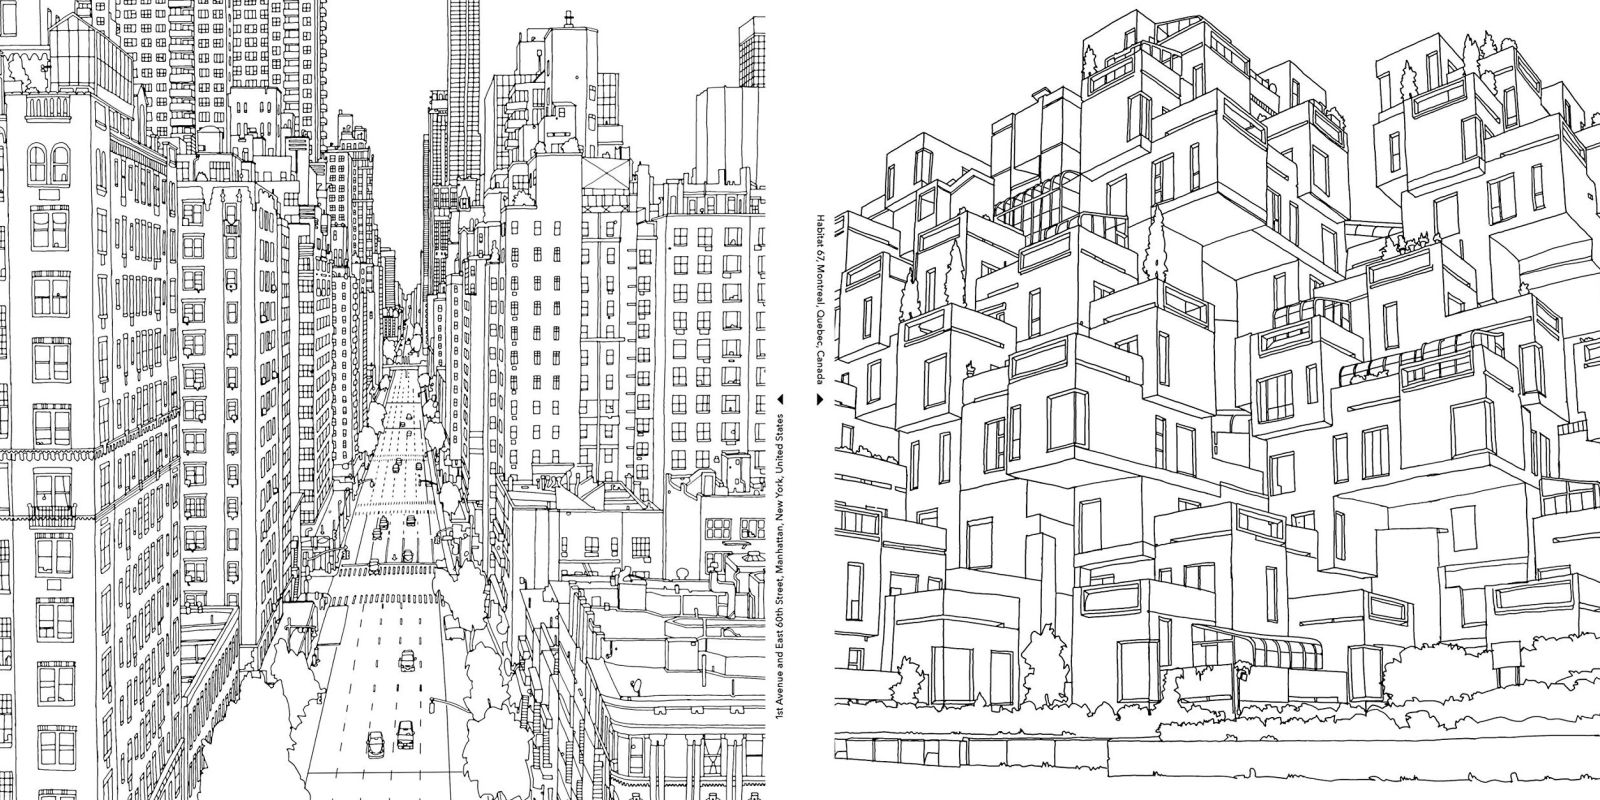 City coloring pages to download and print for free - Lincroyable maison book tower londres ...